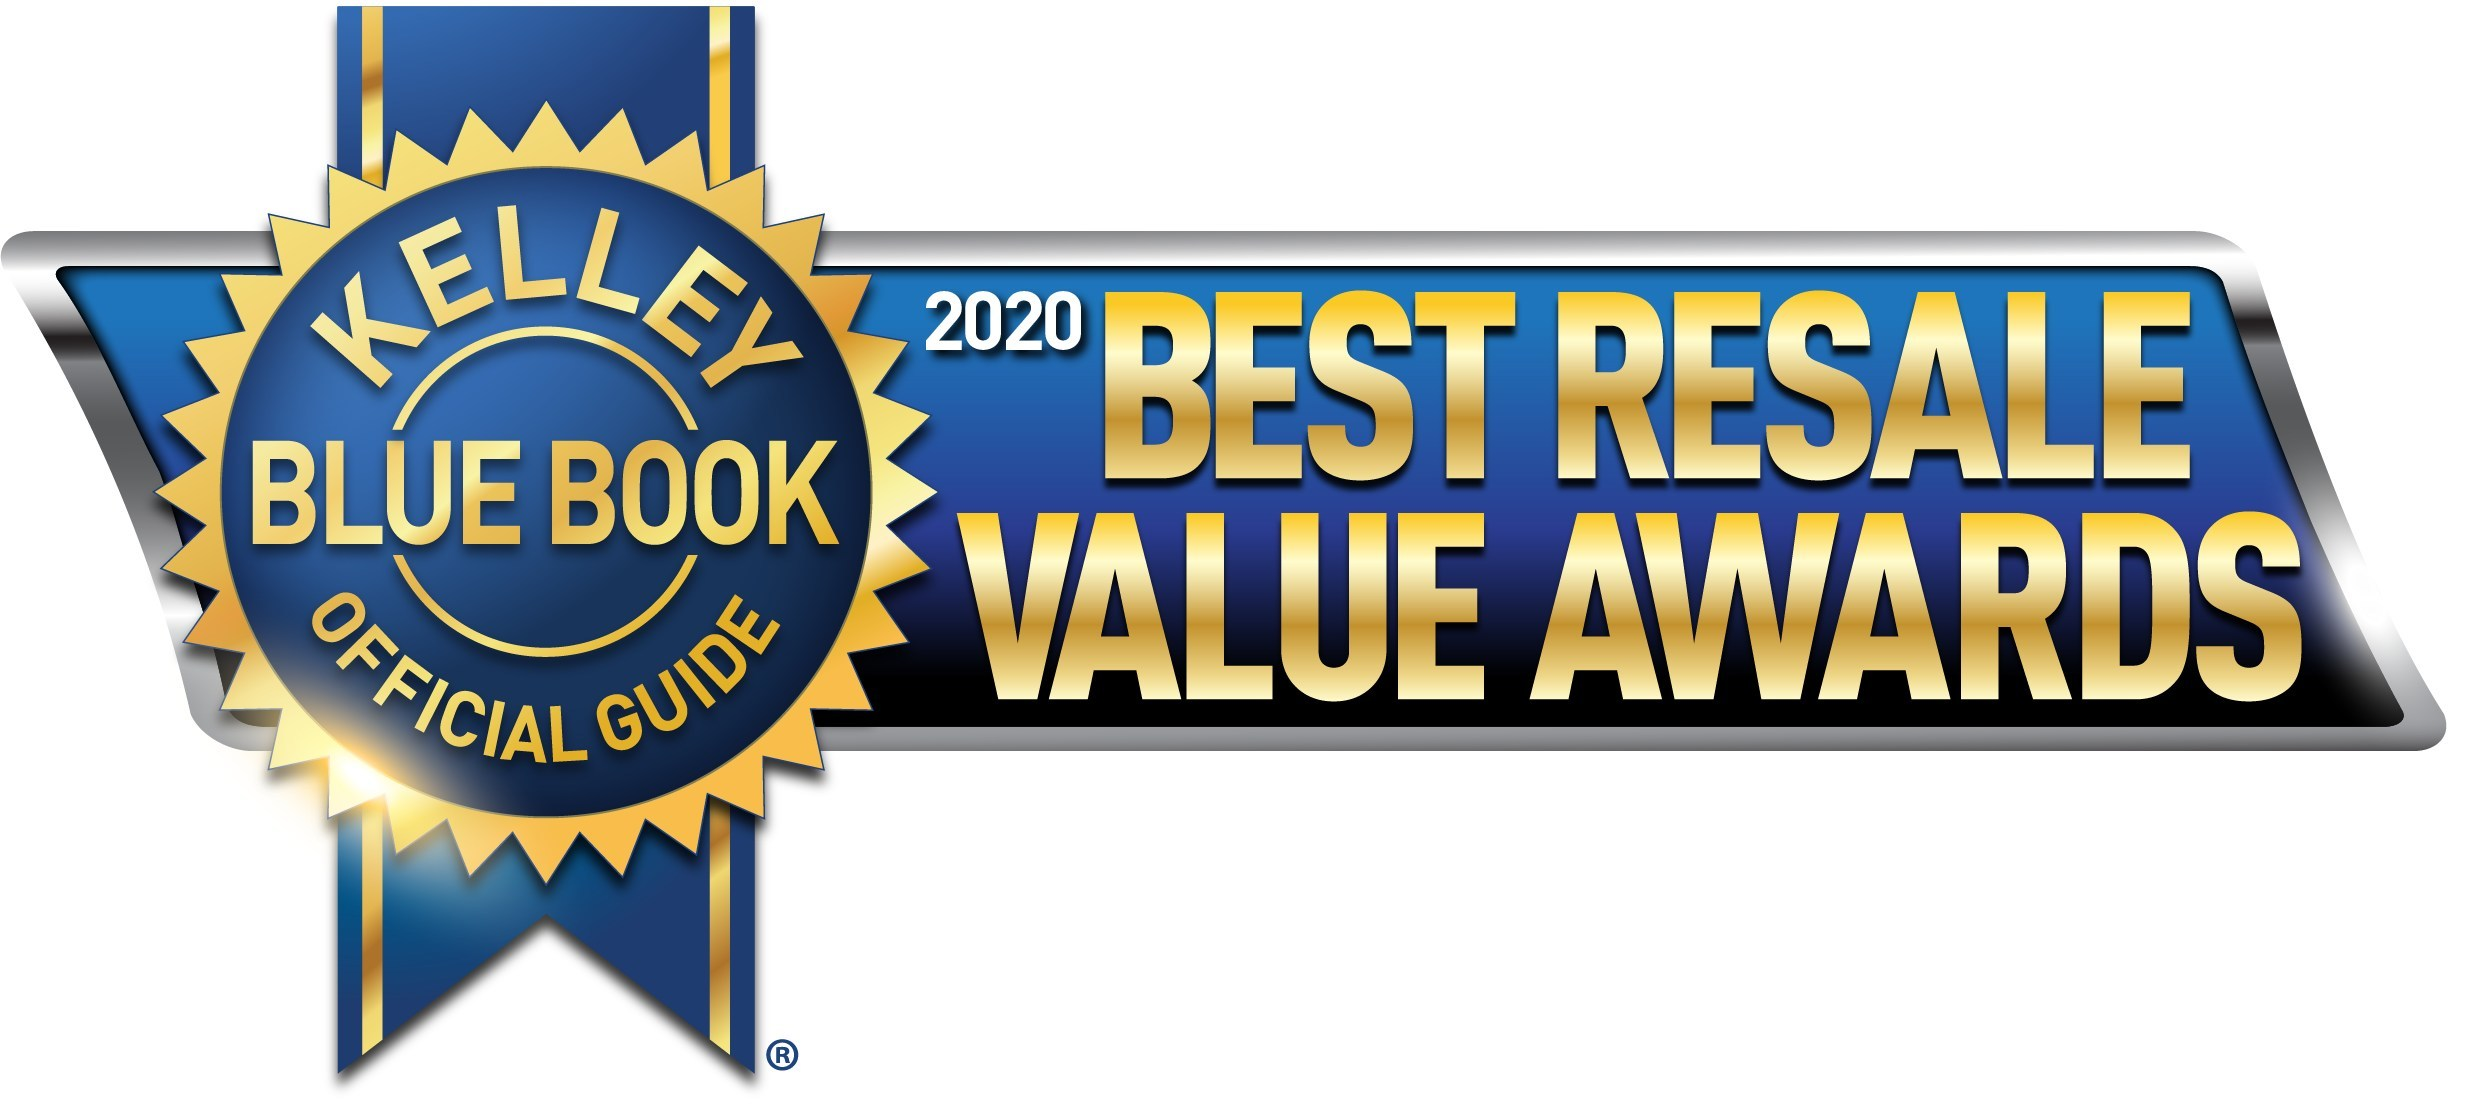 Kelley Blue Book Names 2020 Best Resale Value Award Winners